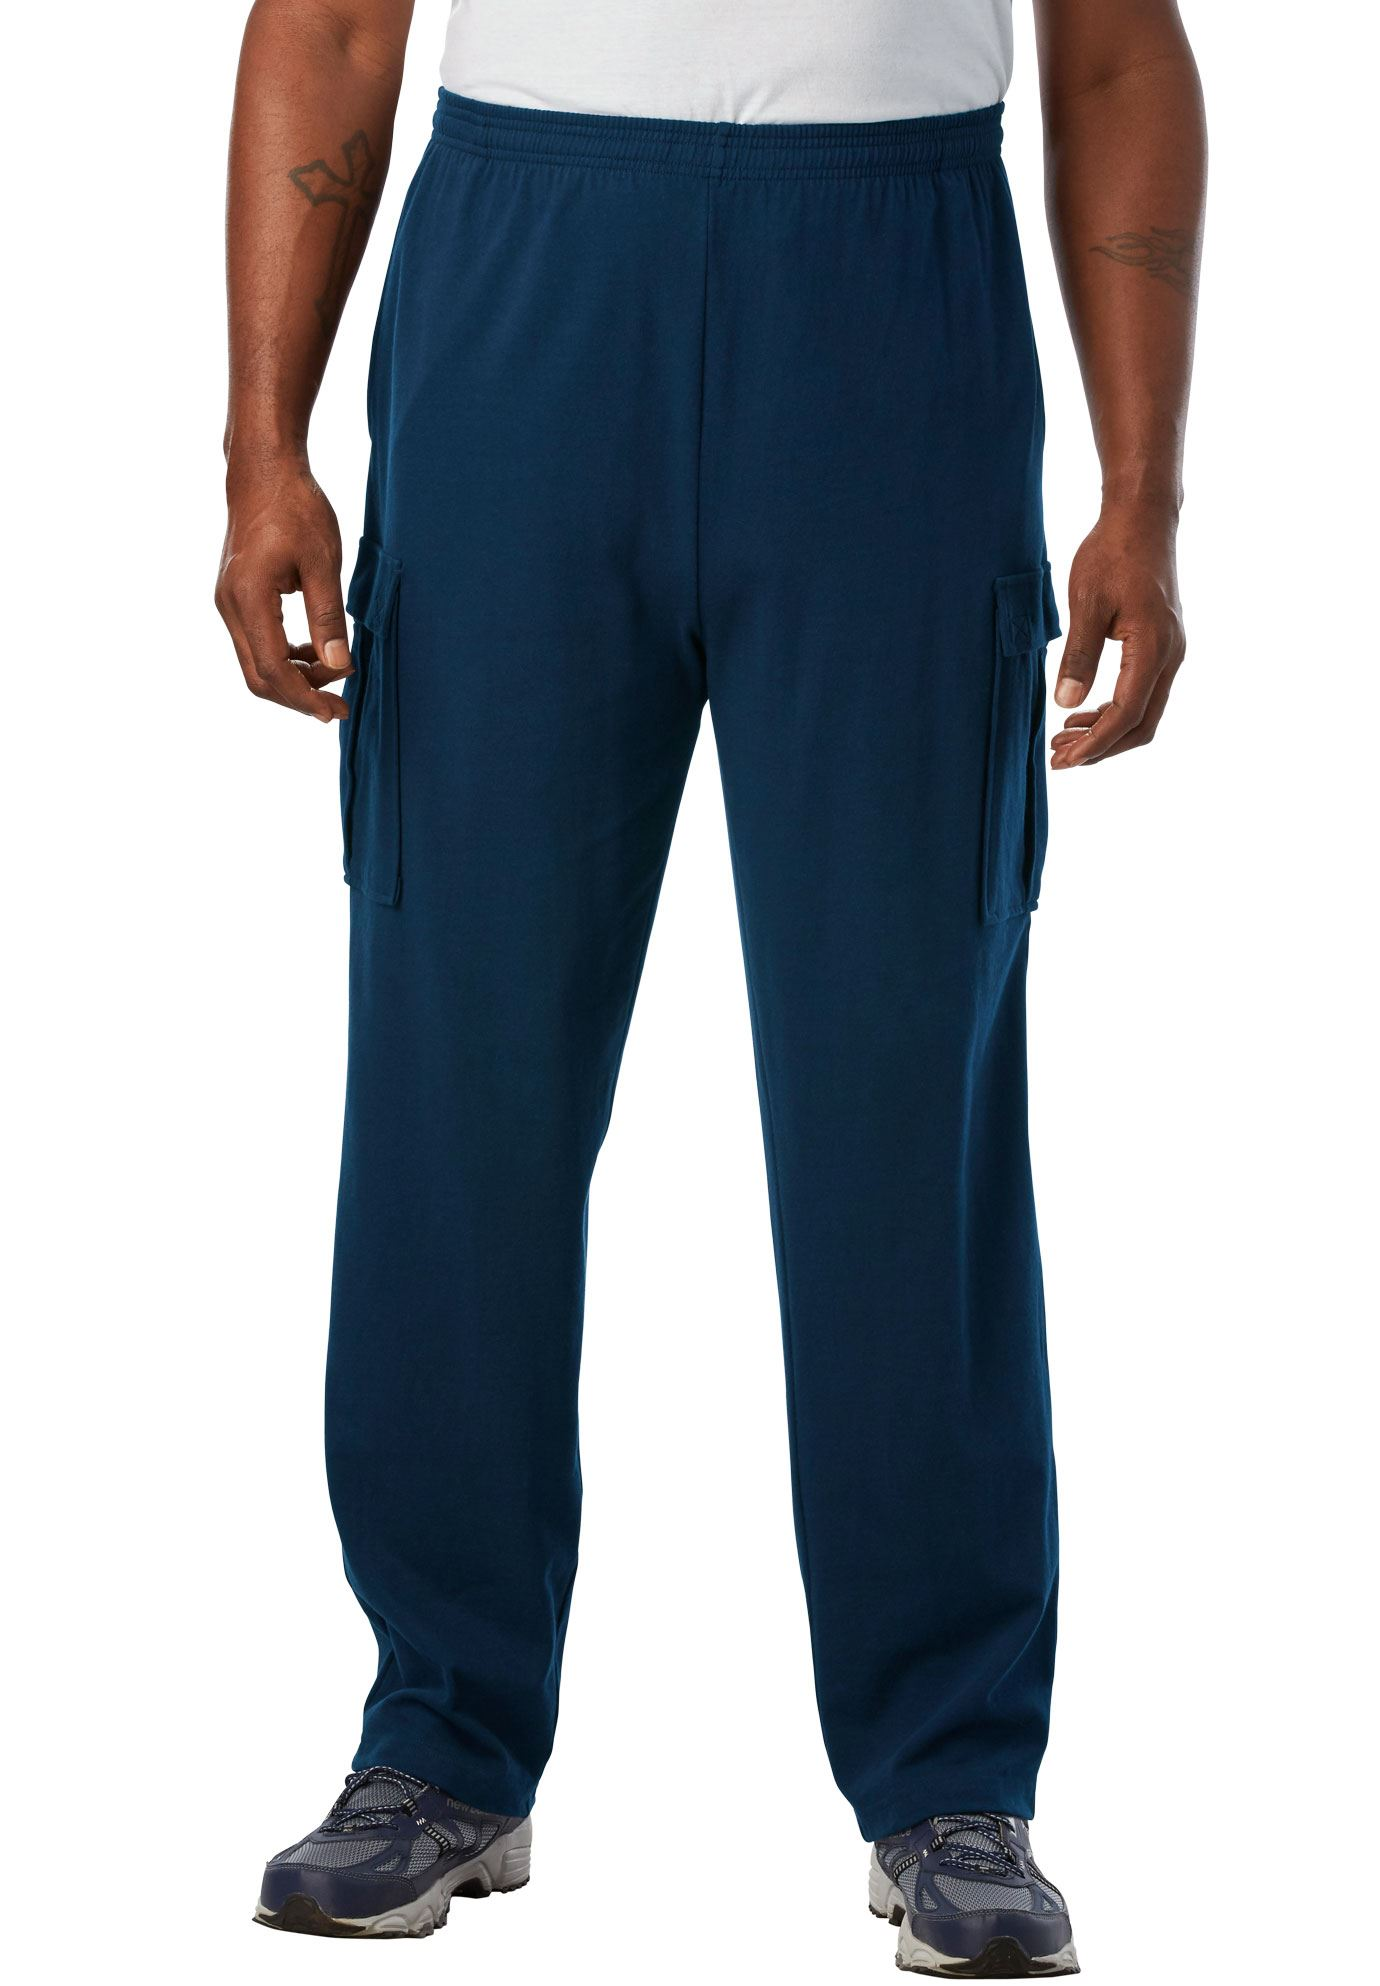 Kingsize Men's Big & Tall Lightweight Cargo Sweats